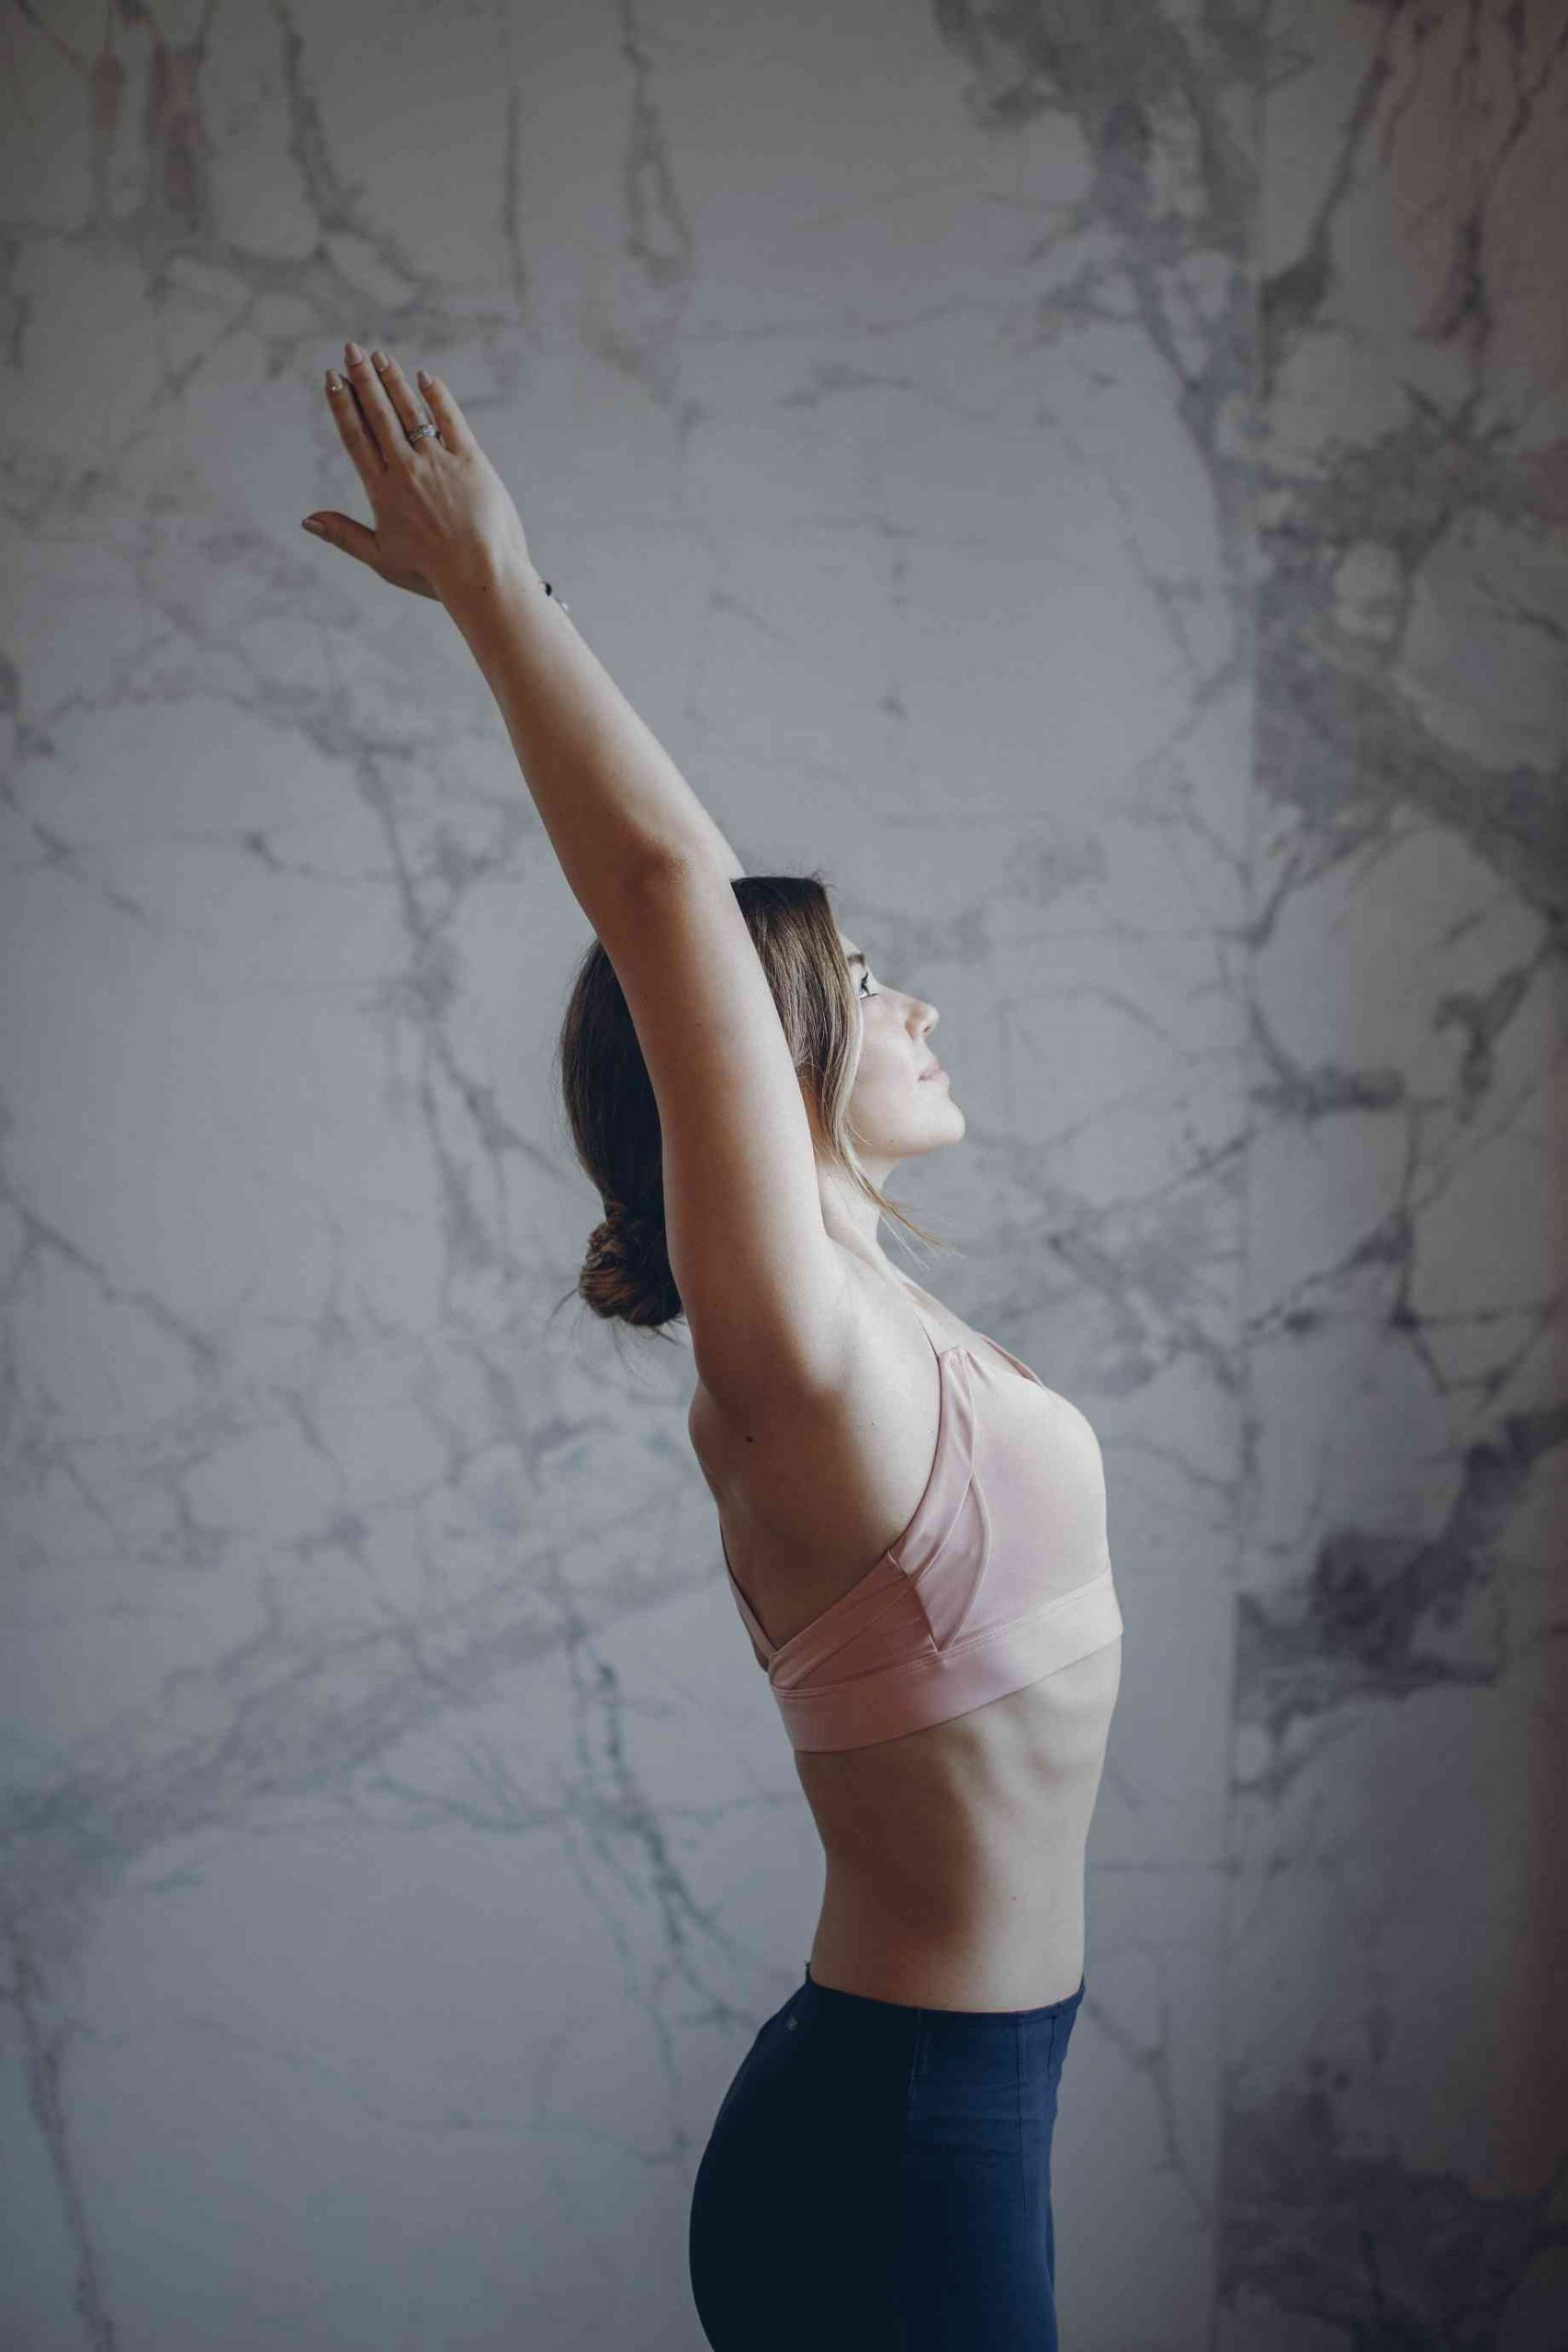 A Young Woman Practice Raised Arms Pose